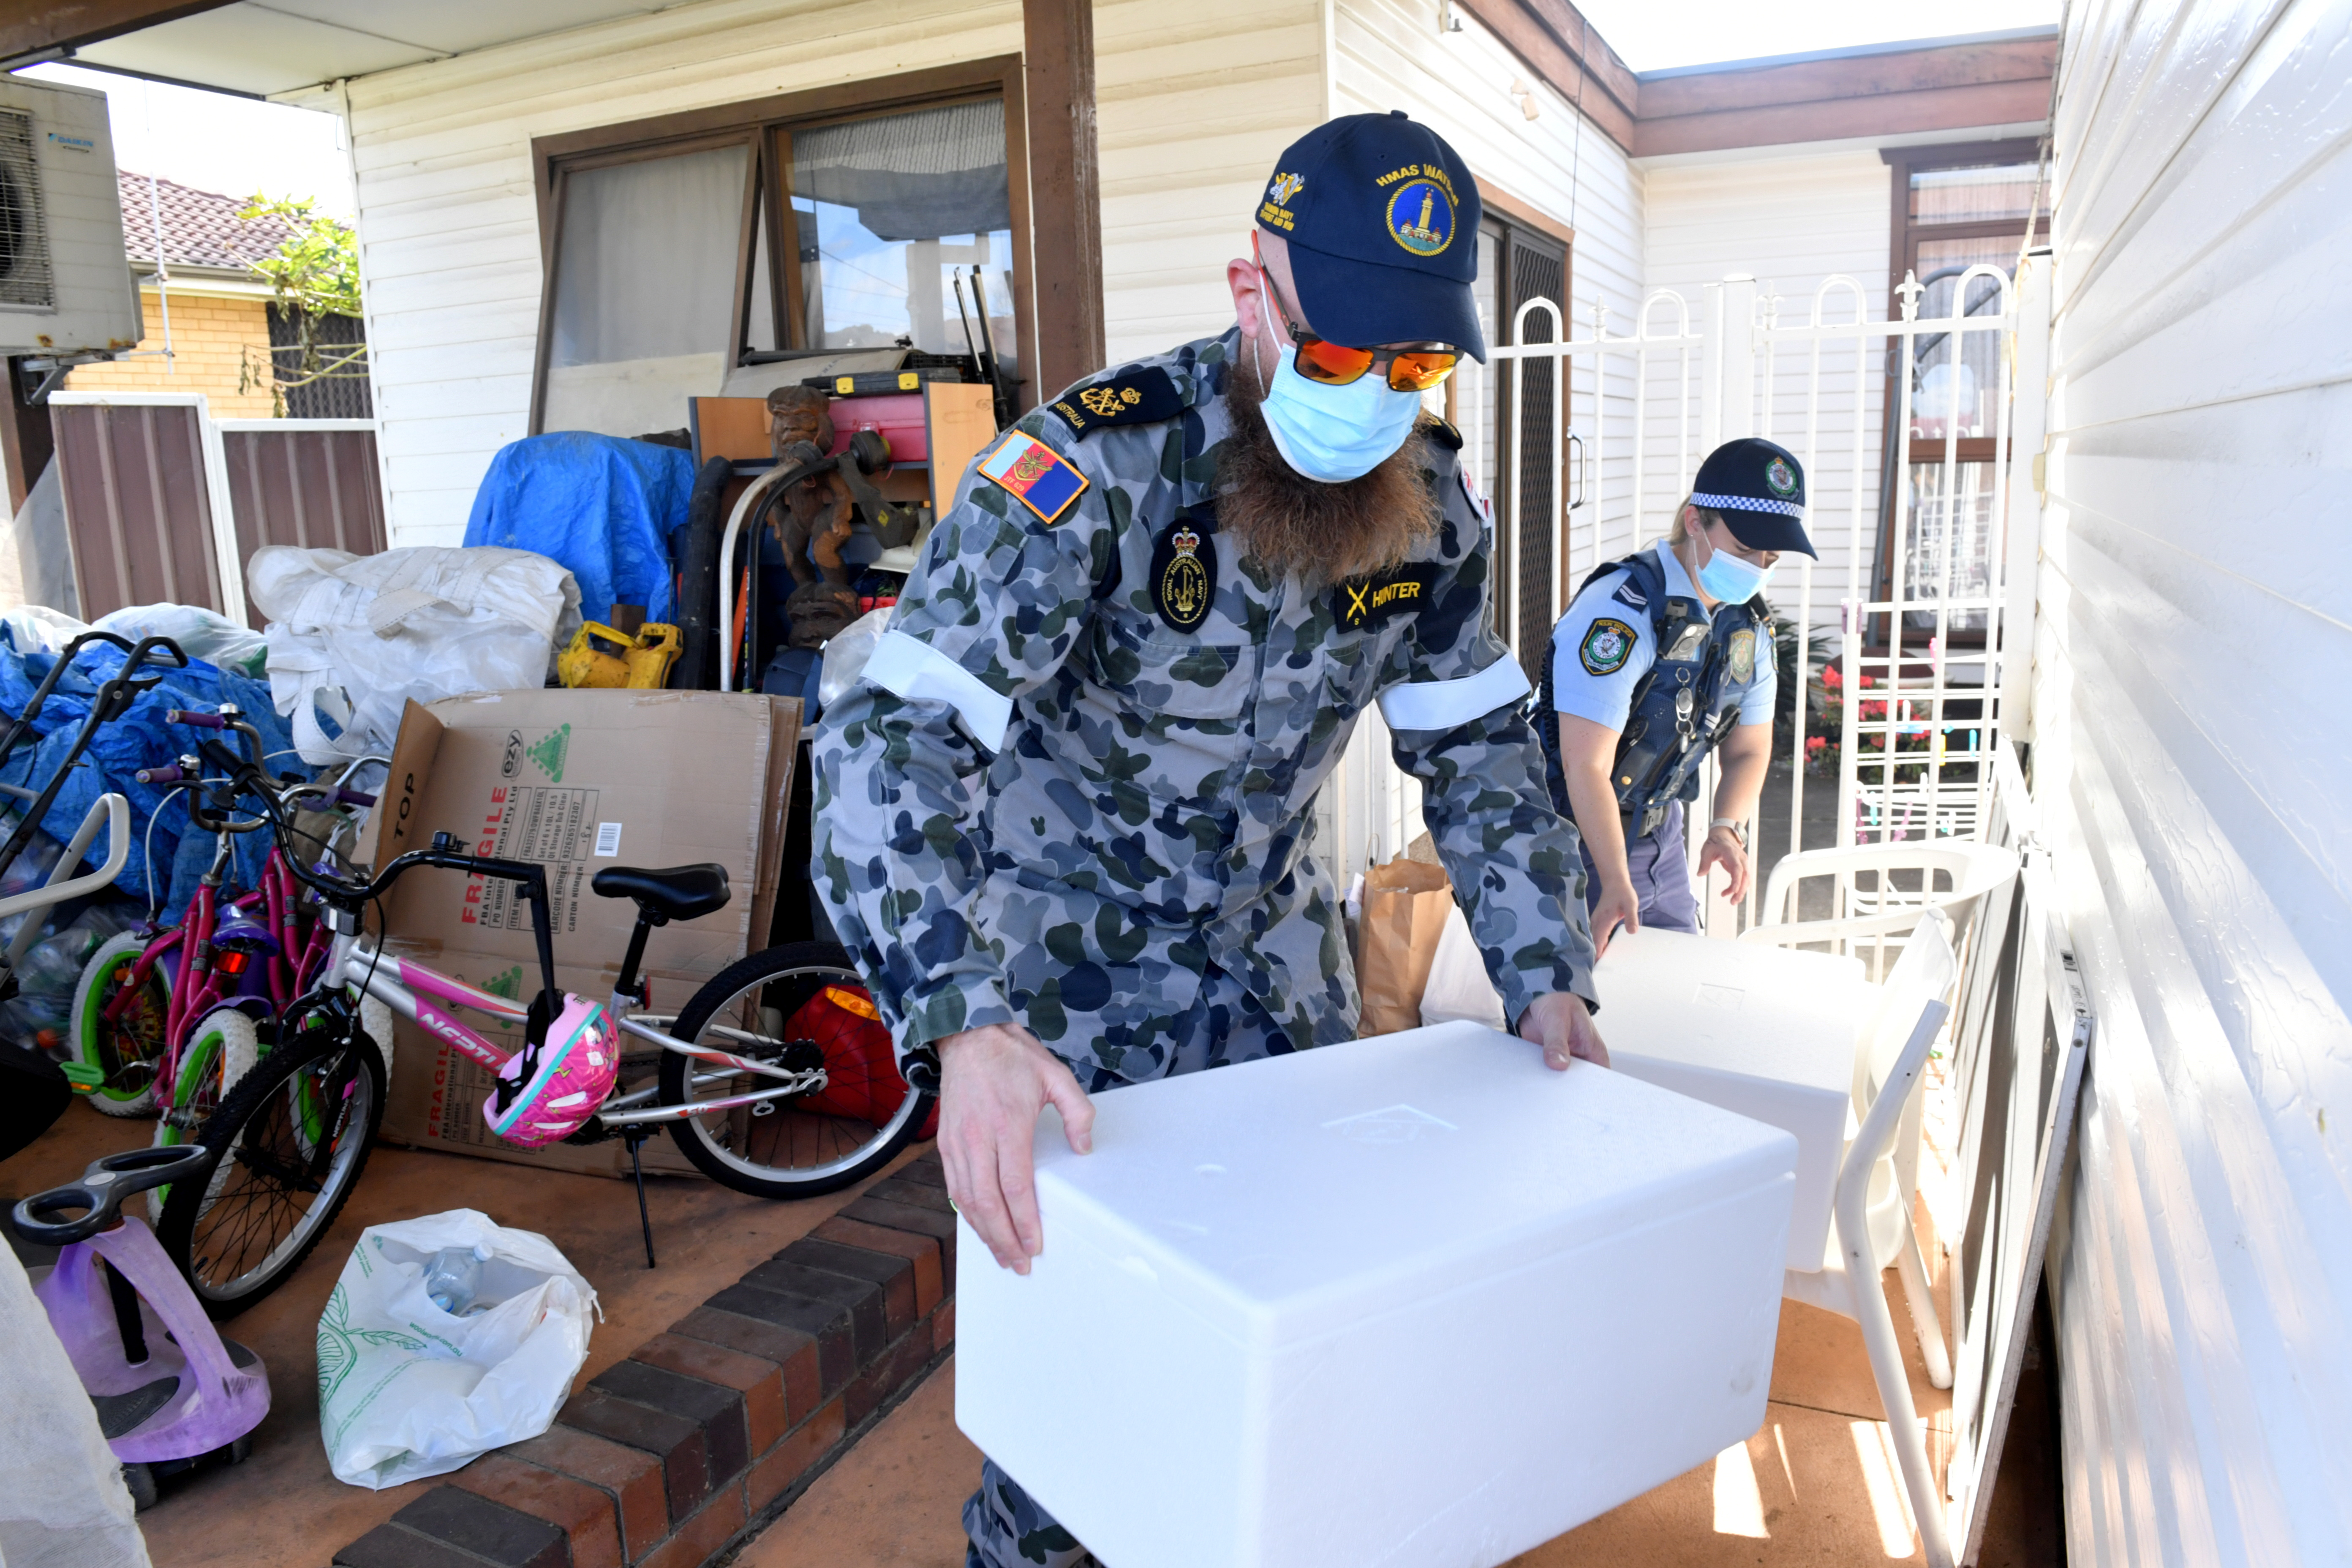 Australian Defence Force personnel and NSW police deliver emergency food parcels for people in lockdown in the Fairfield suburb in the southwest of Sydney, Australia, August 2, 2021.  AAP Image/Mick Tsikas via REUTERS